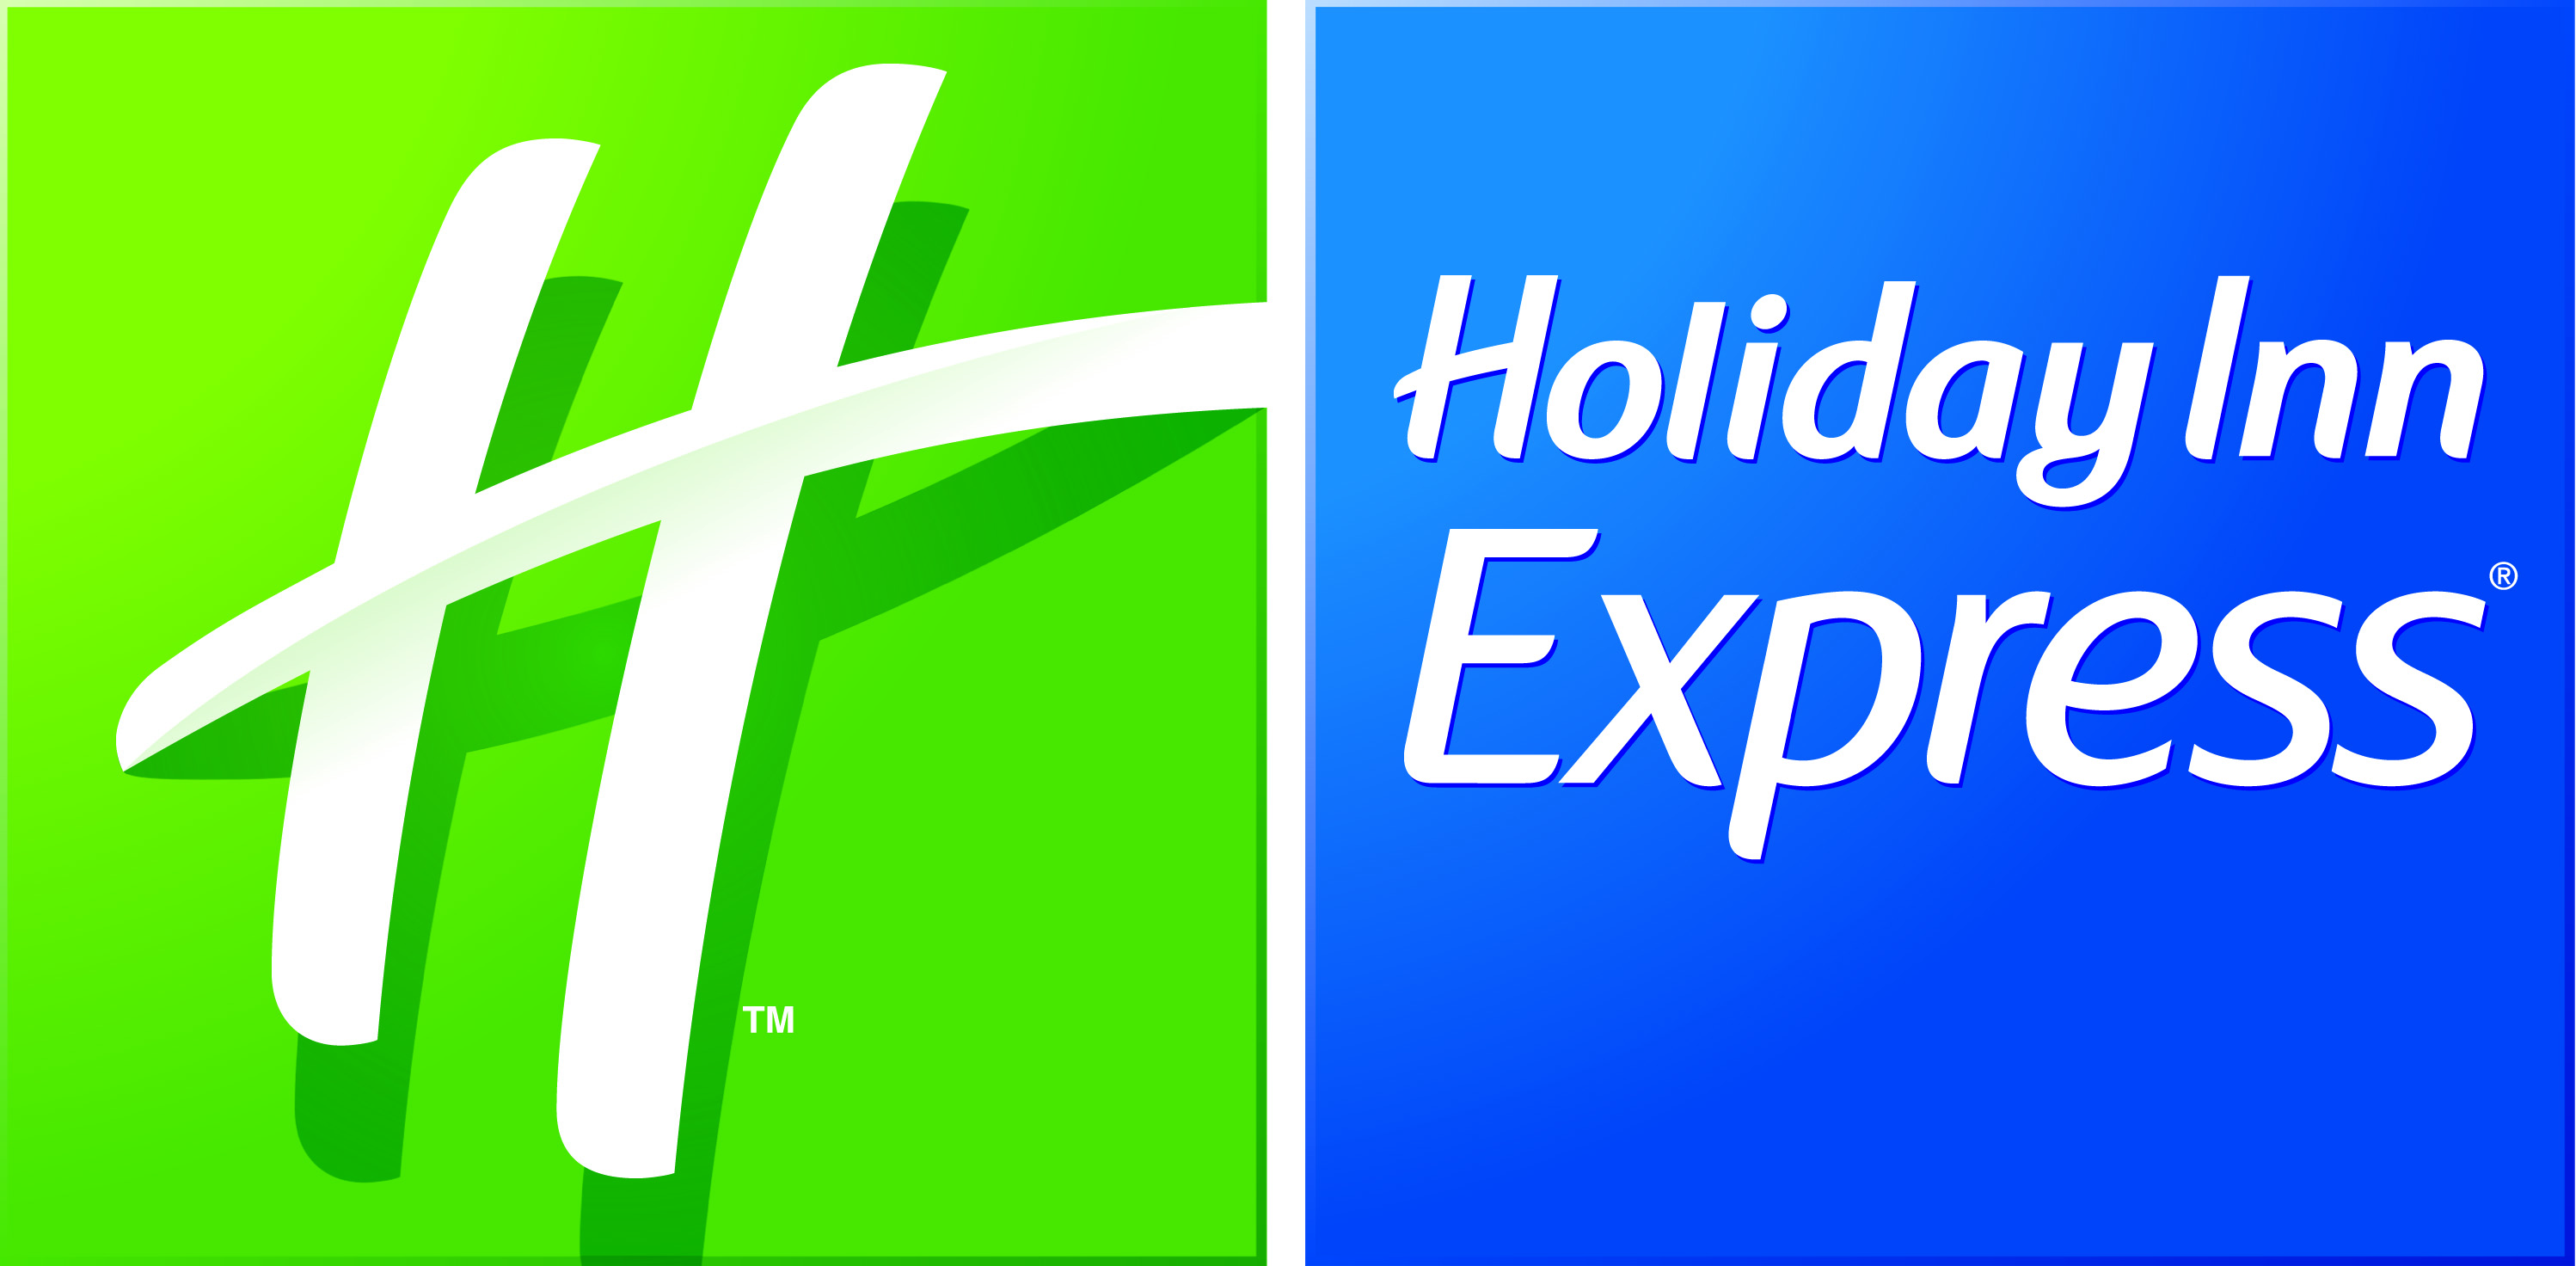 Holiday Inn Express- Sponsor Logo.jpg